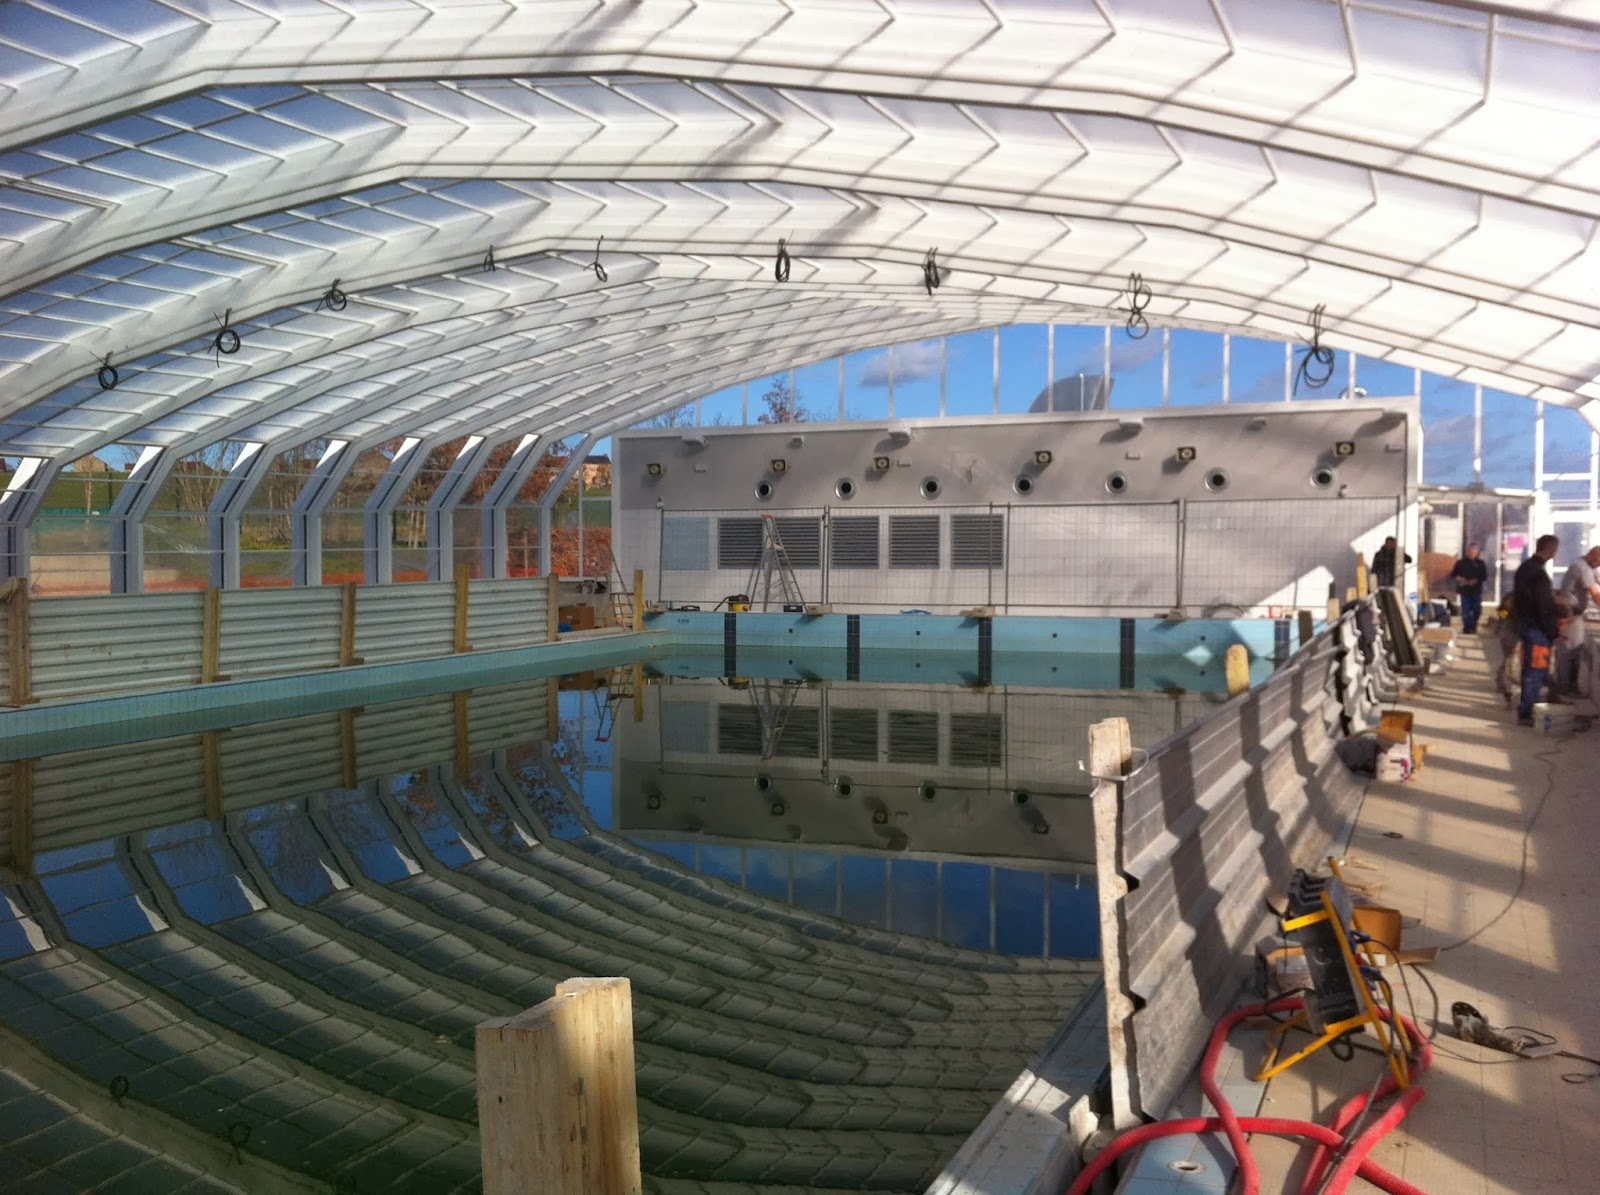 Chantier centre aqualudique de montlu on 03 chm for Centre piscine montlucon